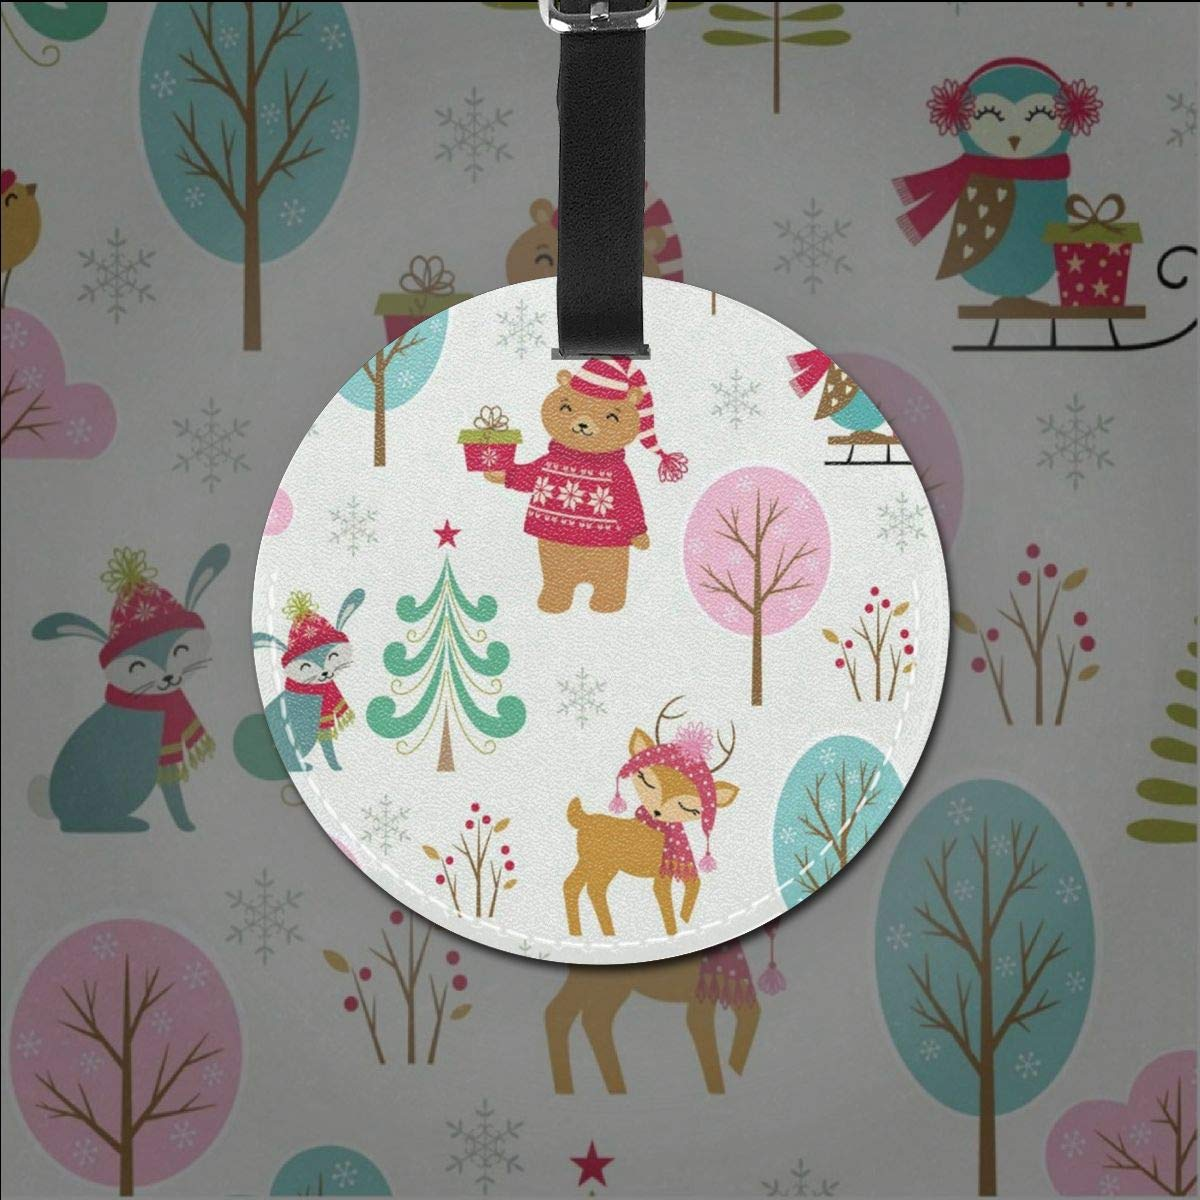 Round Luggage Tags Christmas Trees Pattern Travel Accessories Suitcase Name Tags